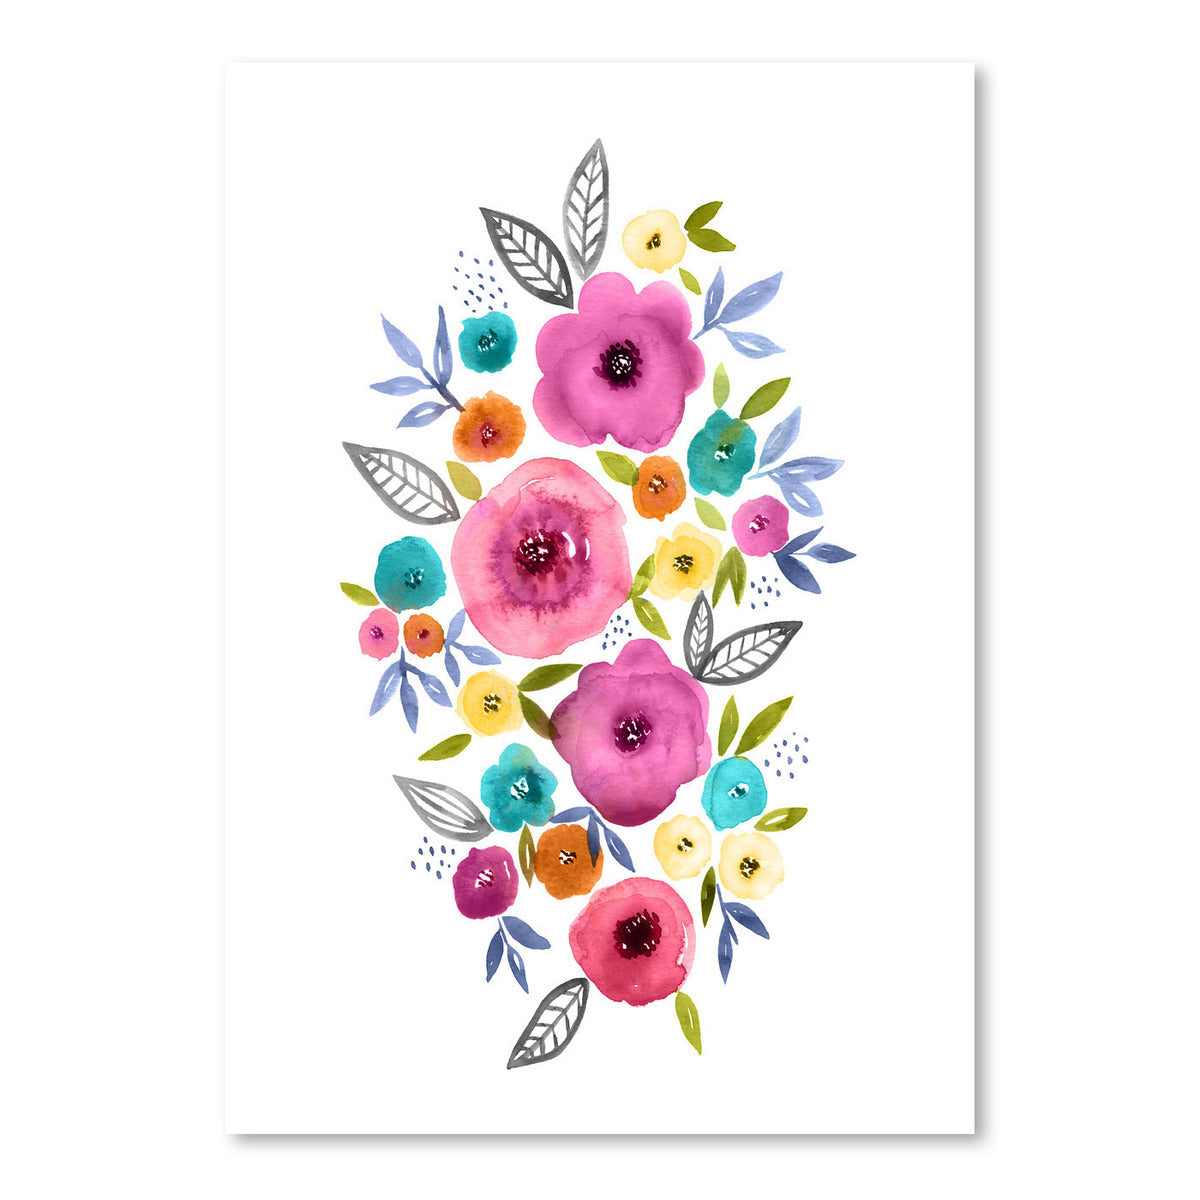 Floral Watercolor Pink by Lisa Nohren - Art Print - Americanflat